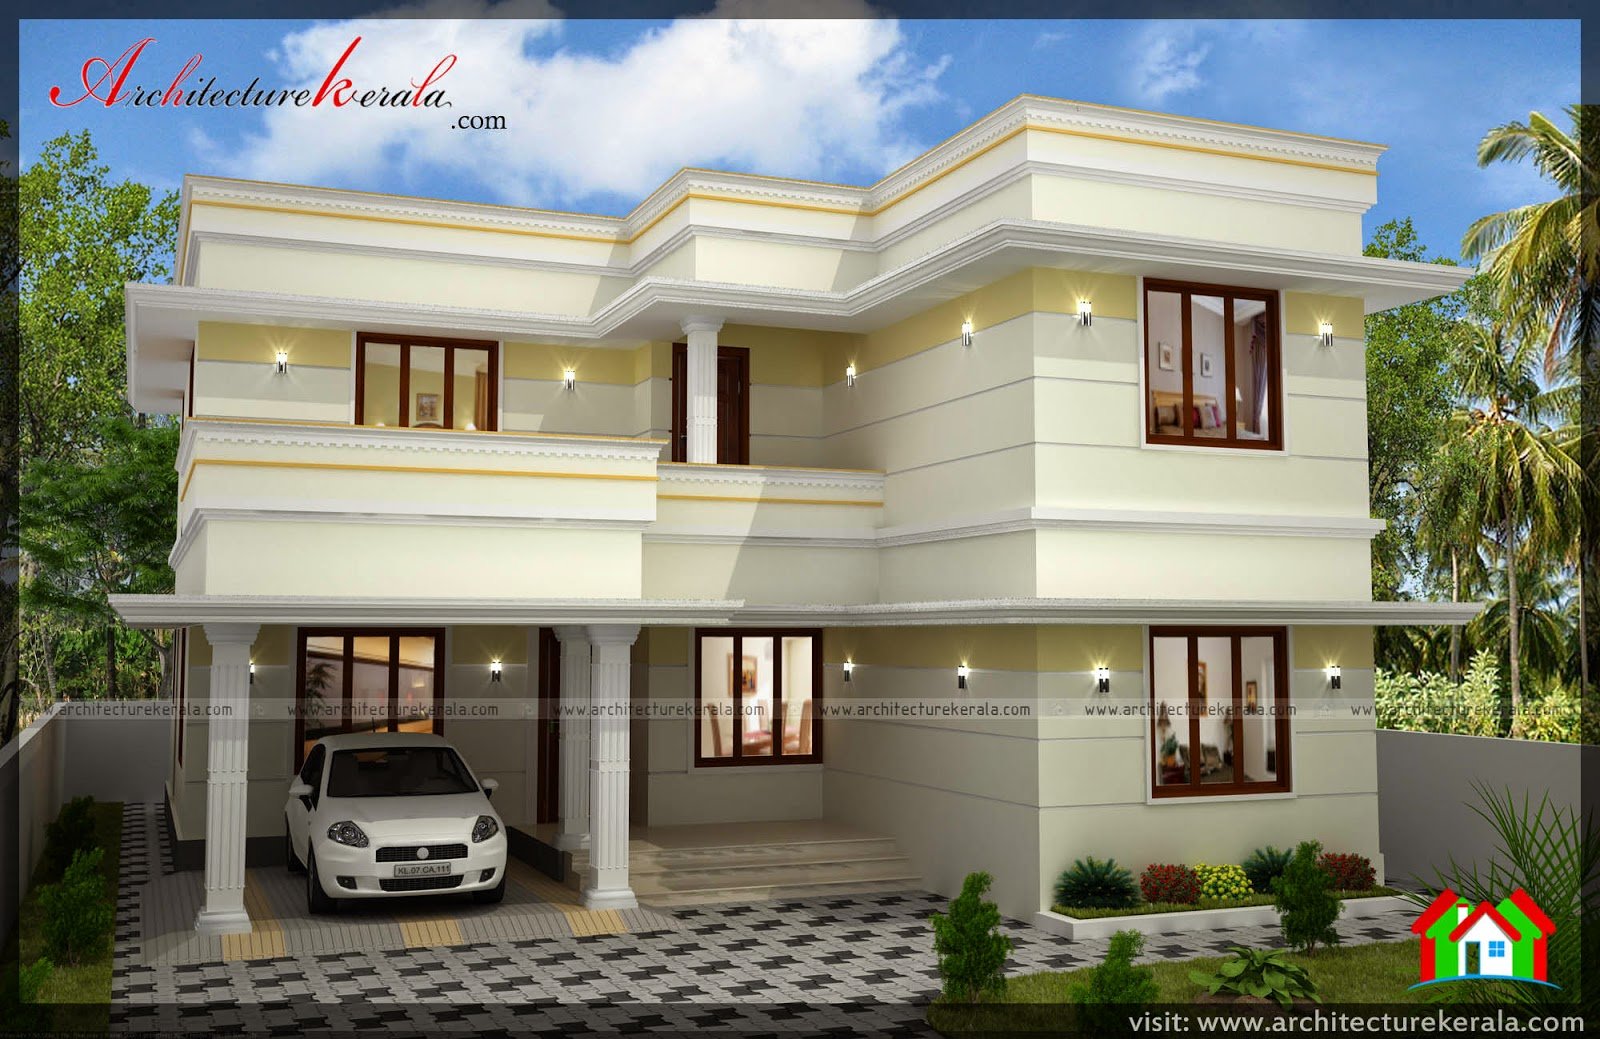 Three bedroom two storey house plan architecture kerala for Two storey building designs